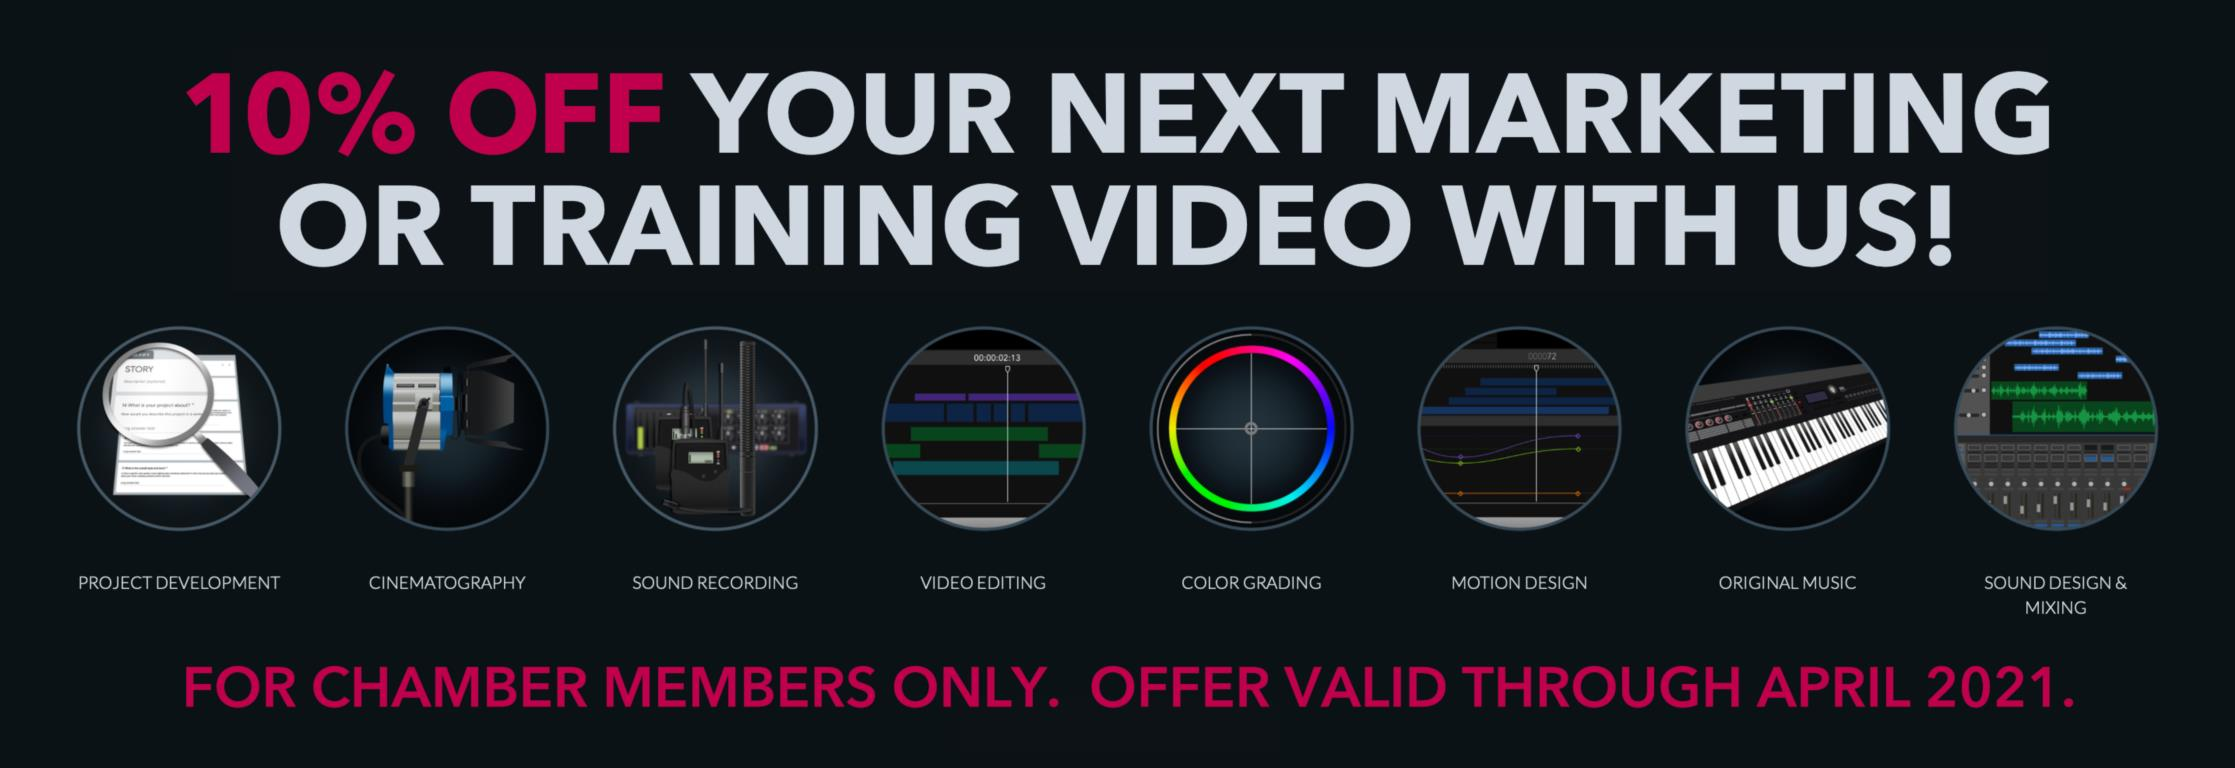 10% OFF Your Next Marketing or Training Video